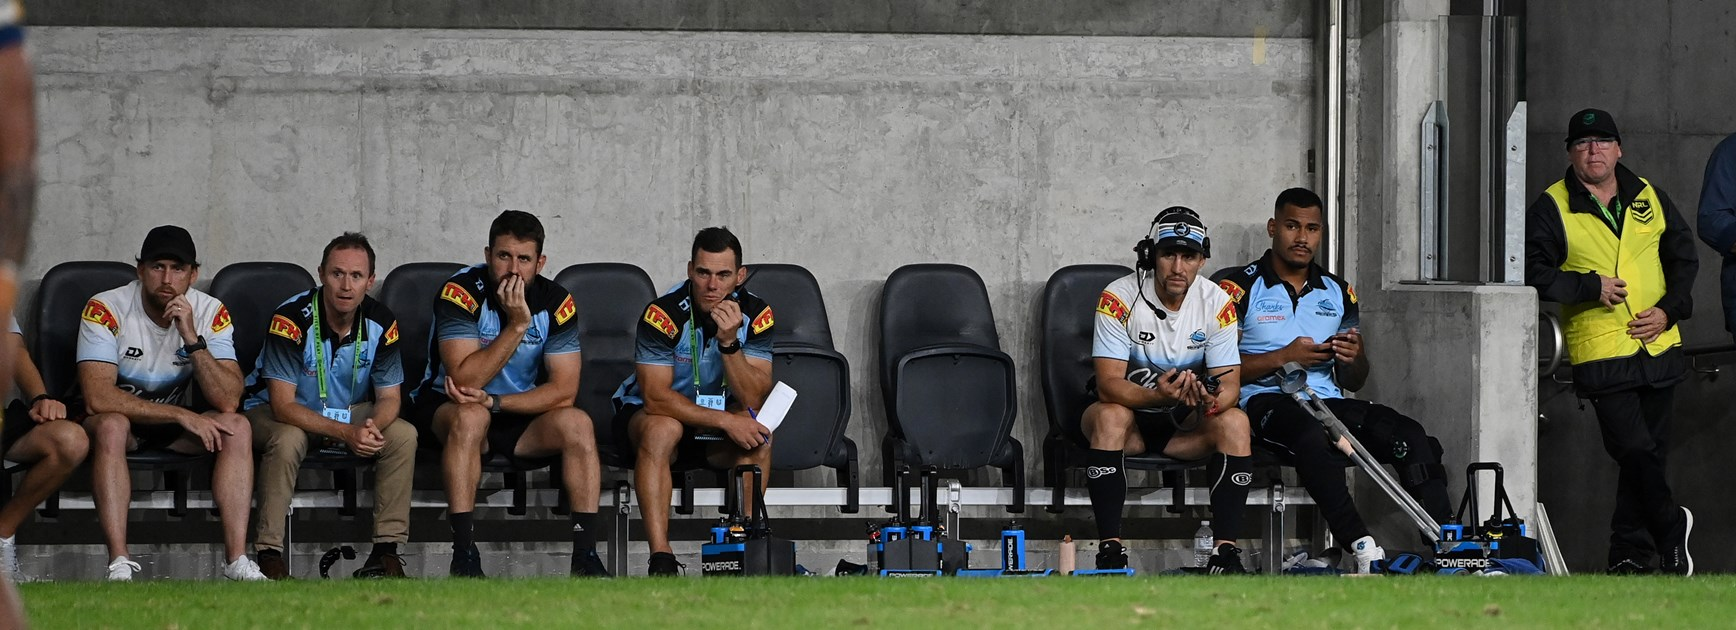 The Sharks bench with no interchange players.